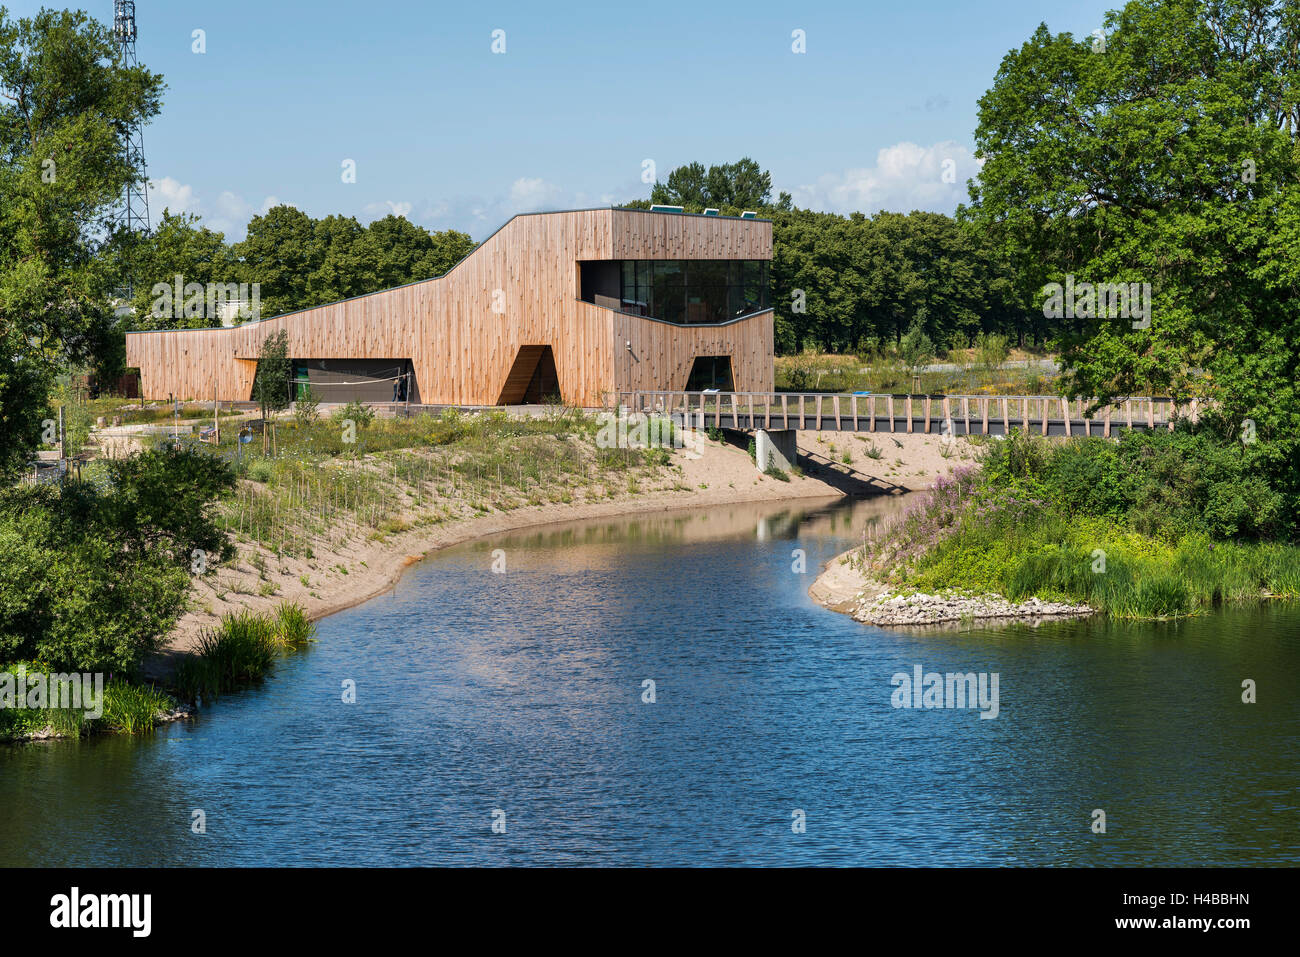 Home of the rivers, Natura 2000 information center, rehabilitated Havel, Middle Elbe Biosphere Reserve, Hanseatic - Stock Image